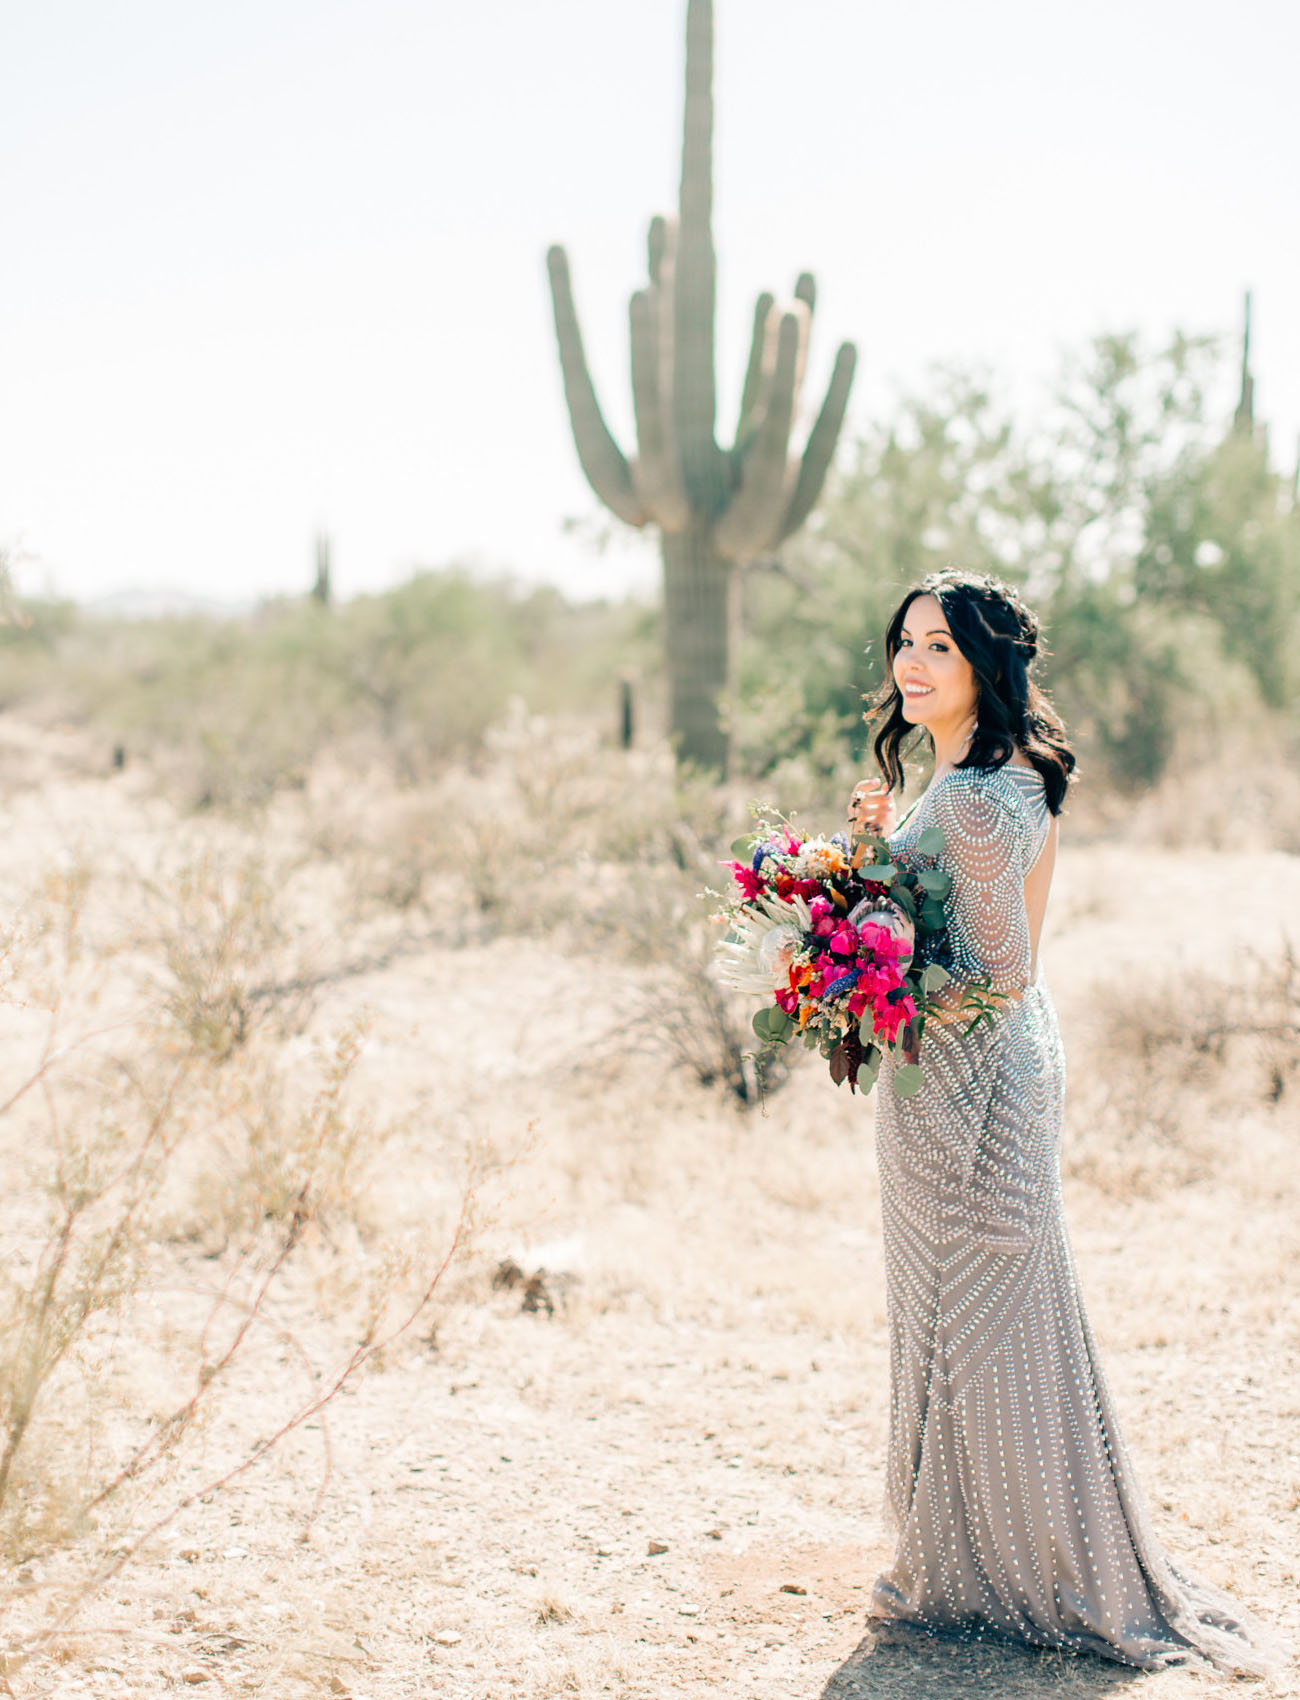 This gorgeous wedding took place right in the center of the desert and was colorful and eclectic